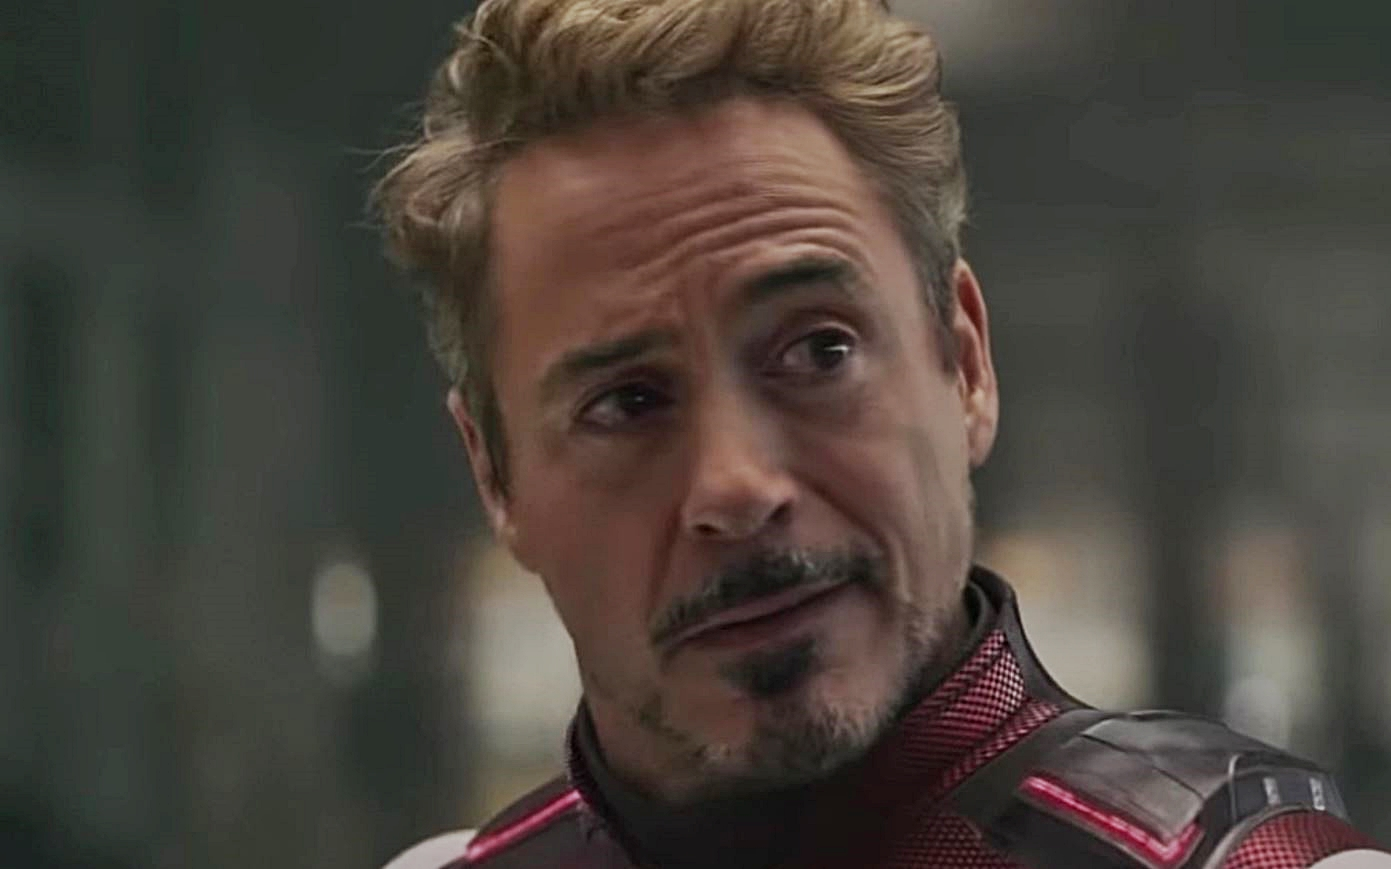 Robert Downey Jr Avengers: Endgame